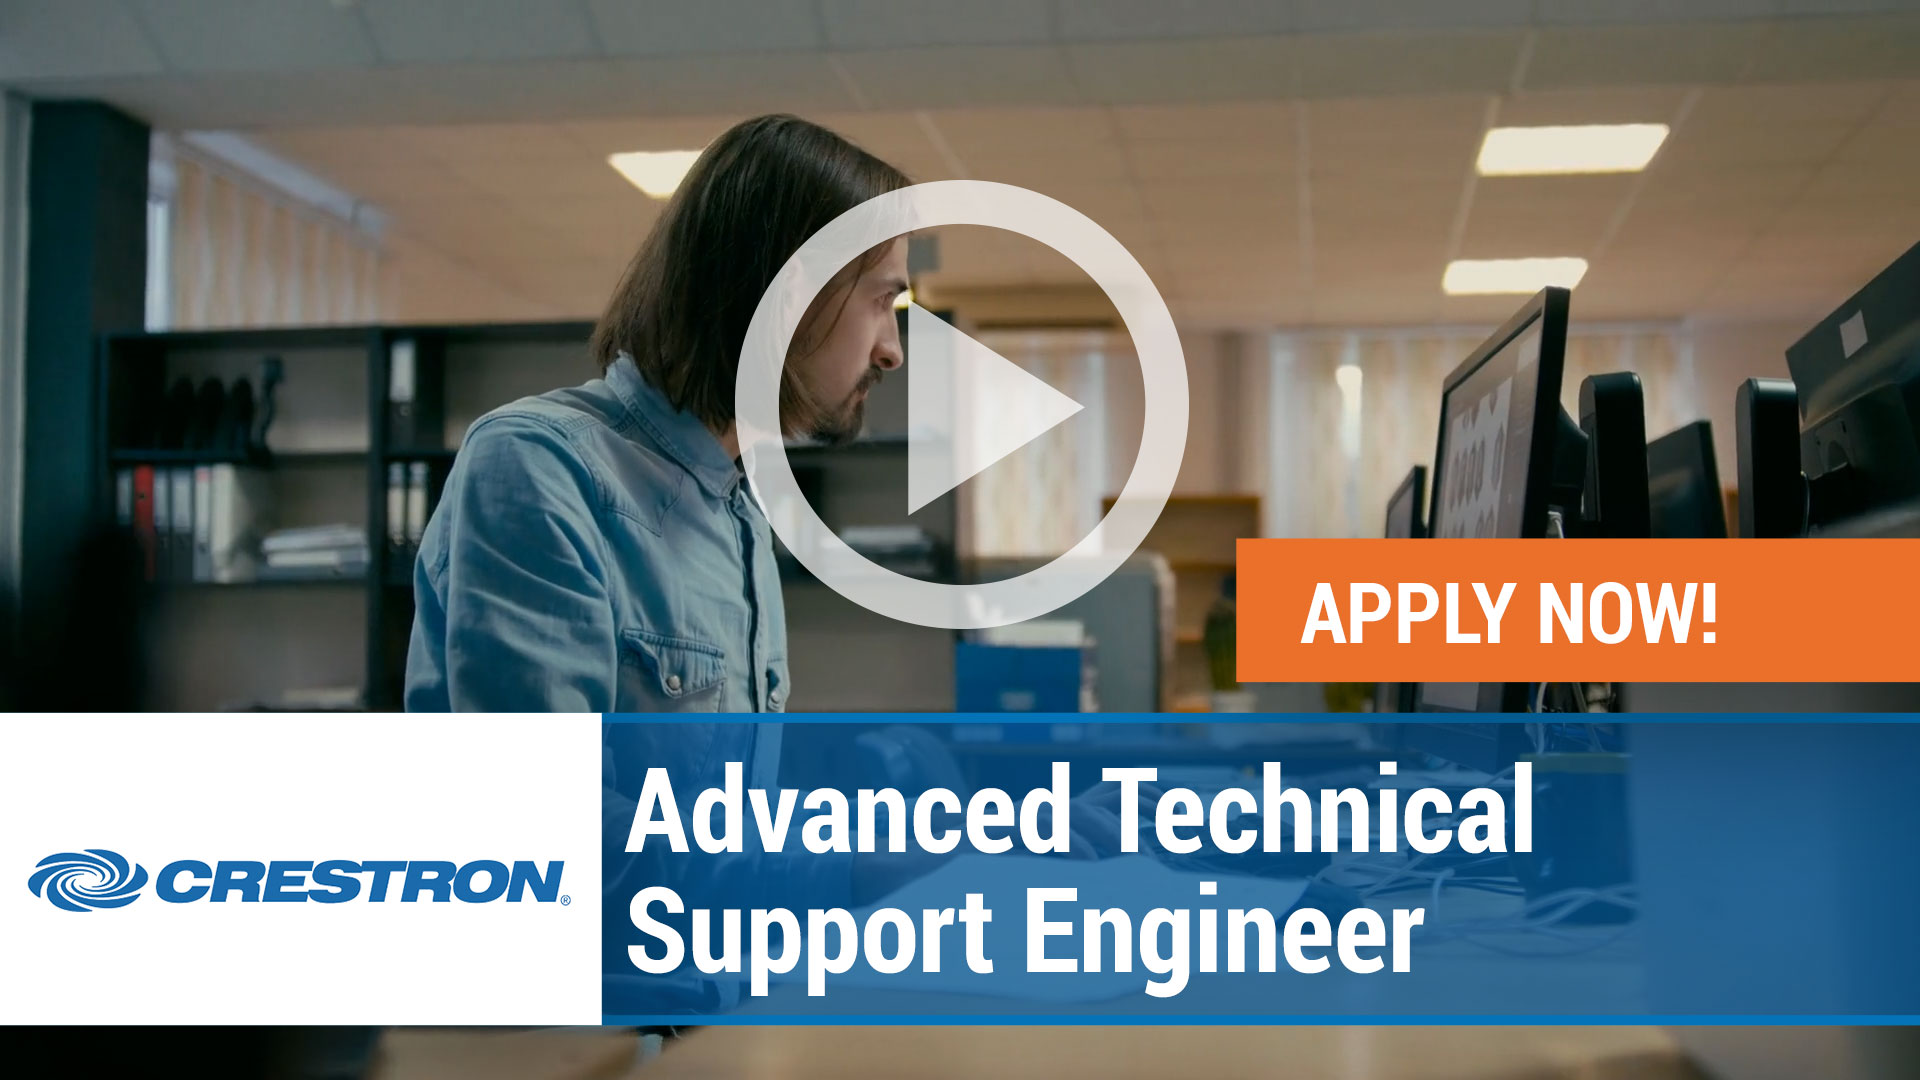 Watch our careers video for available job opening Advanced Technical Support Engineer in Rockleigh, New Jersey